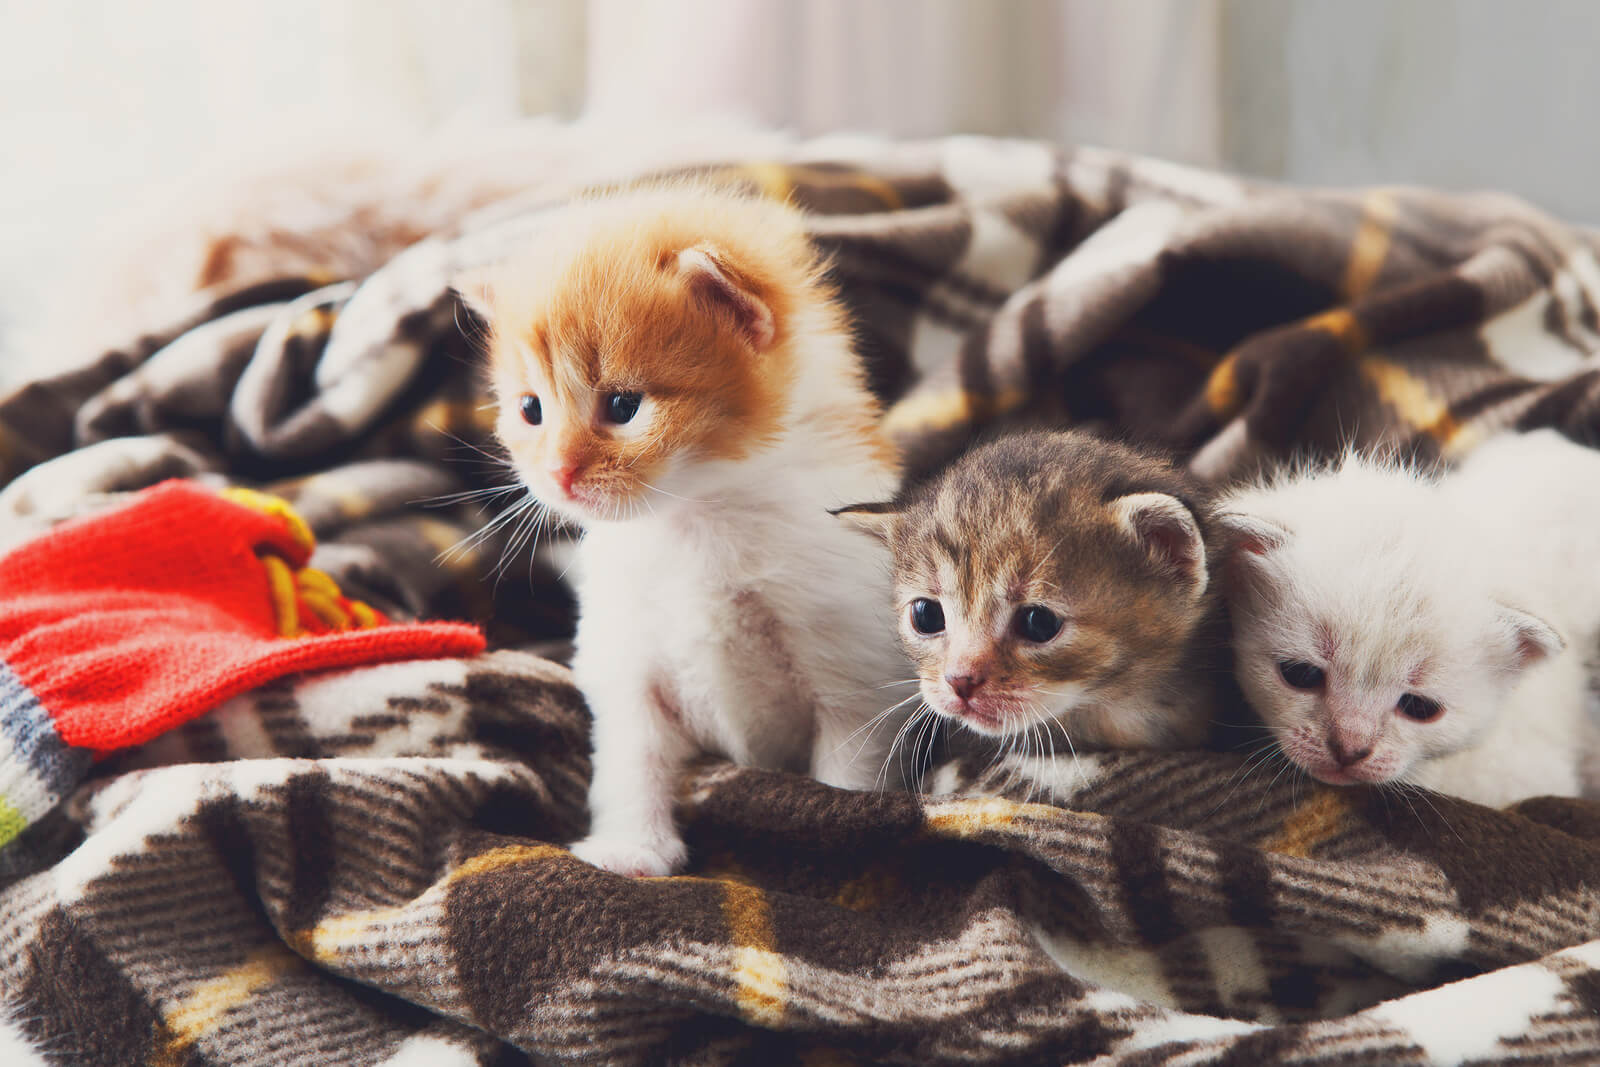 Kittens sitting on a brown plaid blanket.